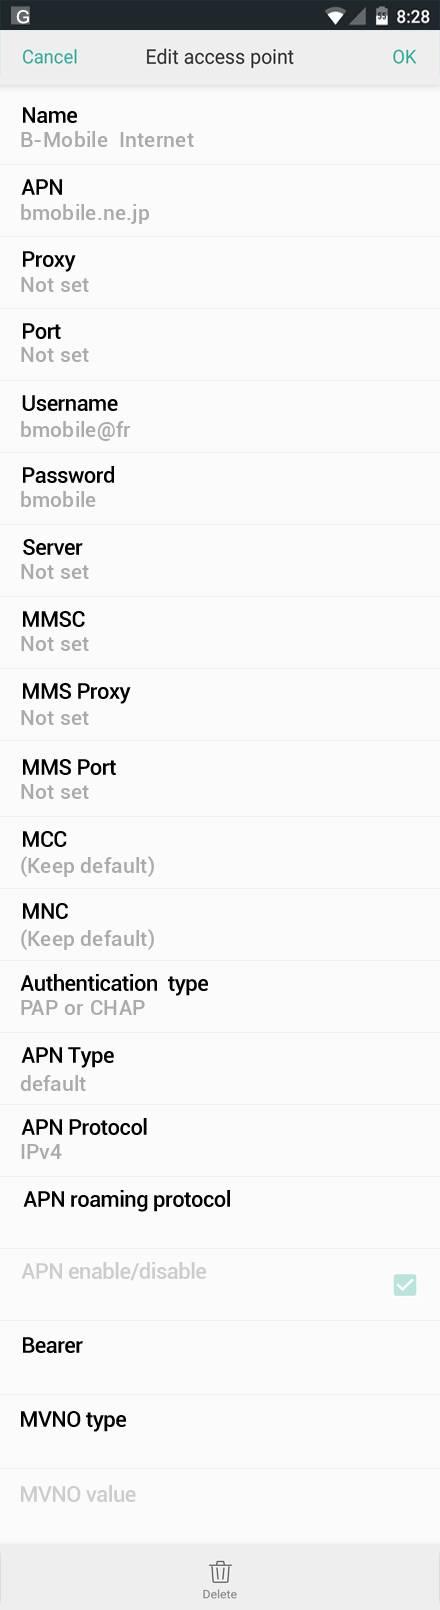 B-Mobile  Internet APN settings for Oppo screenshot